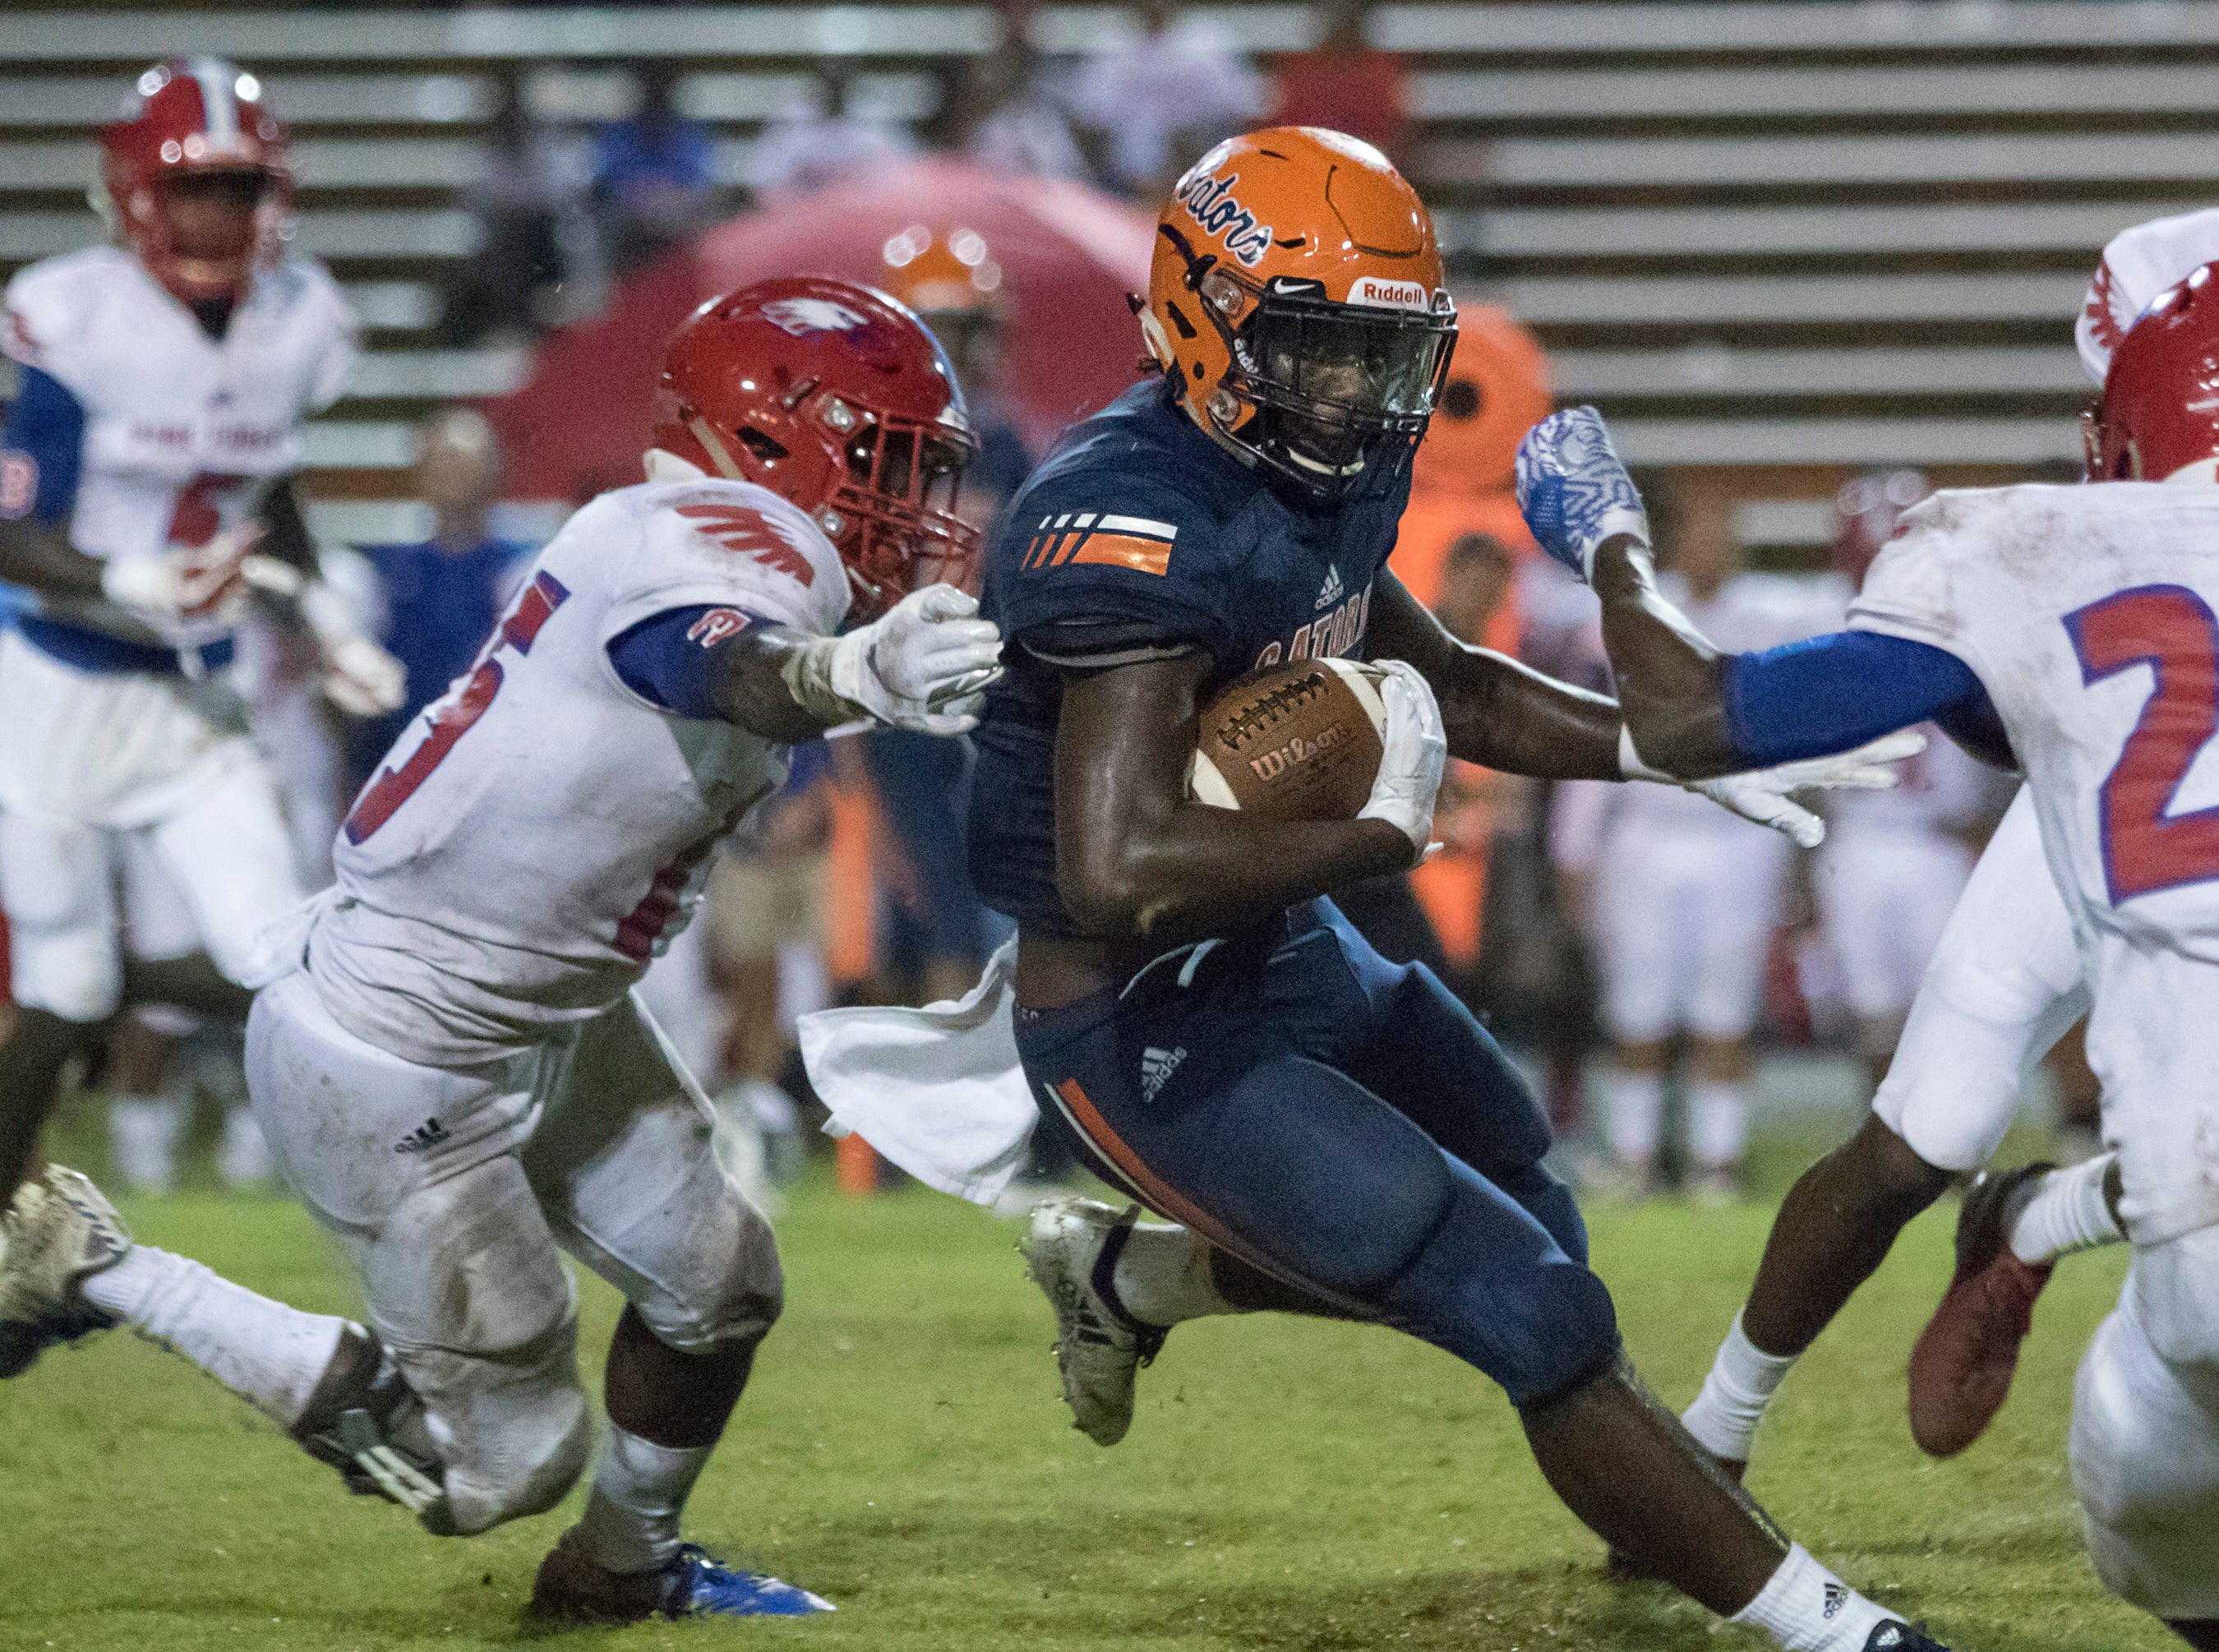 Frank Peasent (1) slips past several Eagles defenders on a big run before getting stopped just short of the goal line during the Pine Forest vs Escambia football game at Escambia High School in Pensacola on Friday, September 28, 2018.